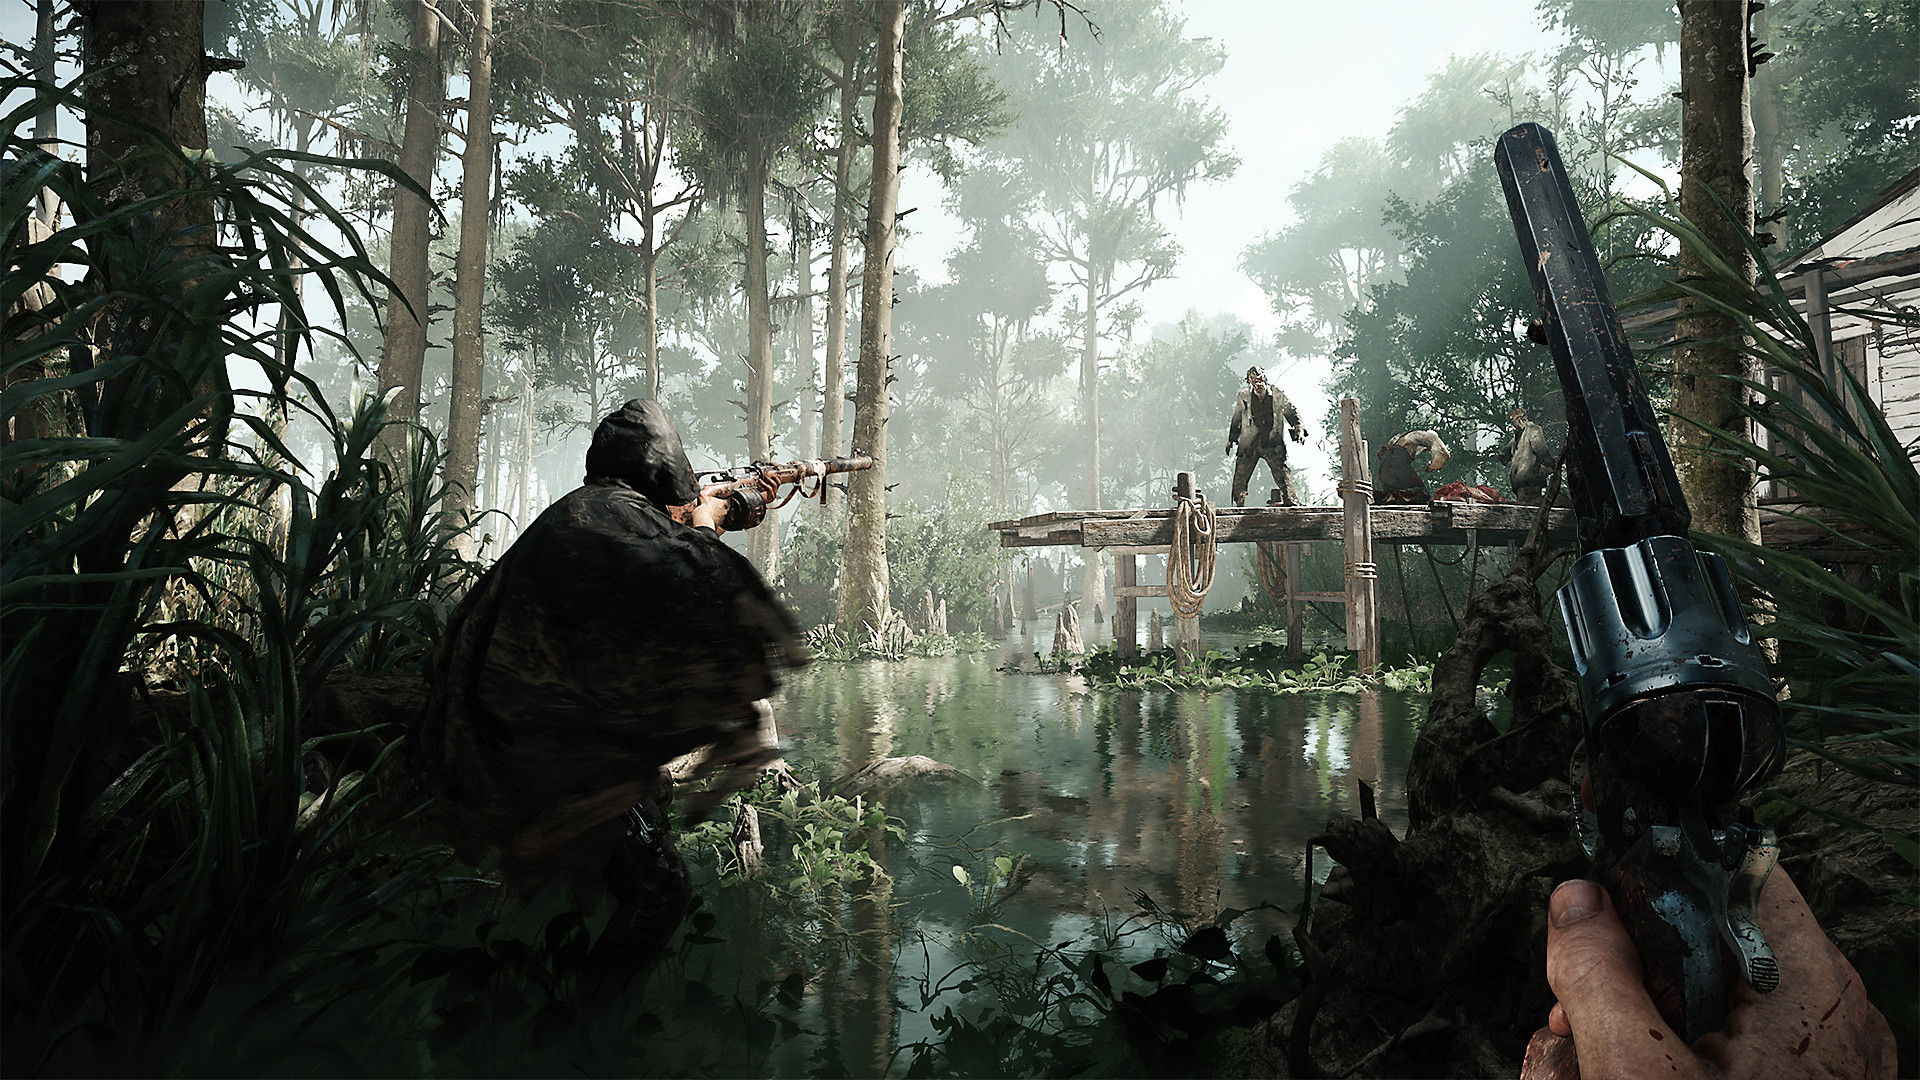 Hunt: Showdown: Gameplay, swamp, shooter aiming at enemy